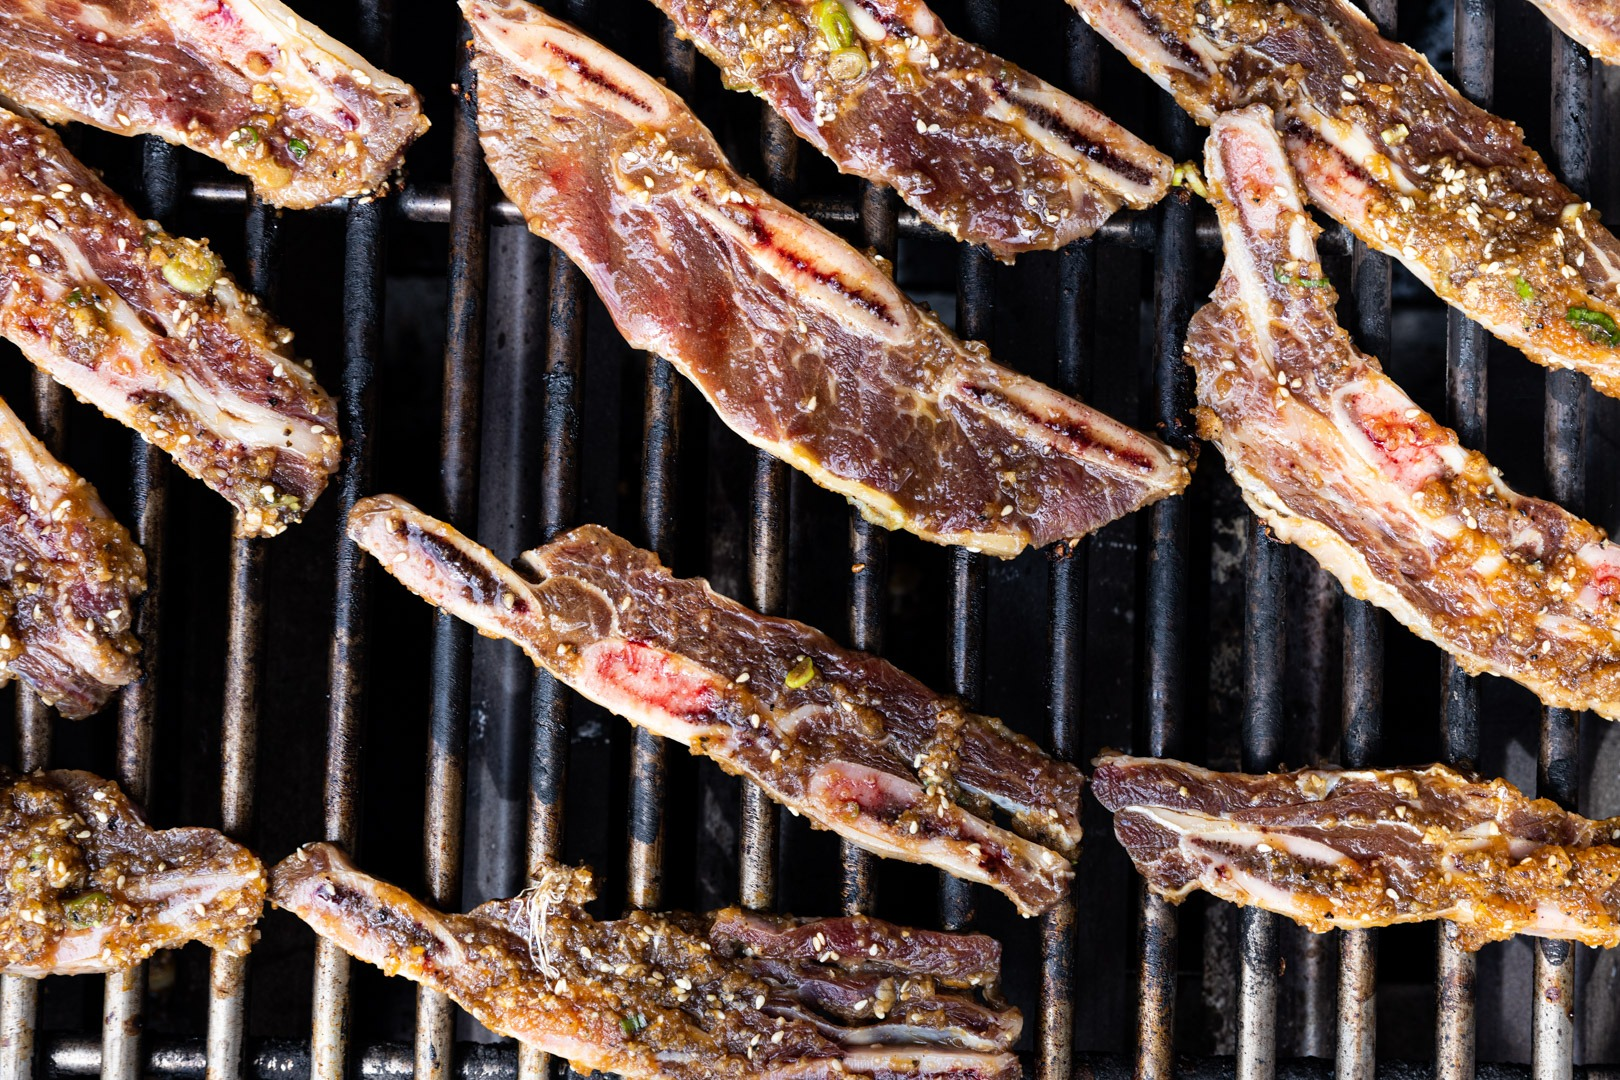 Flanken-cut ribs on the grill